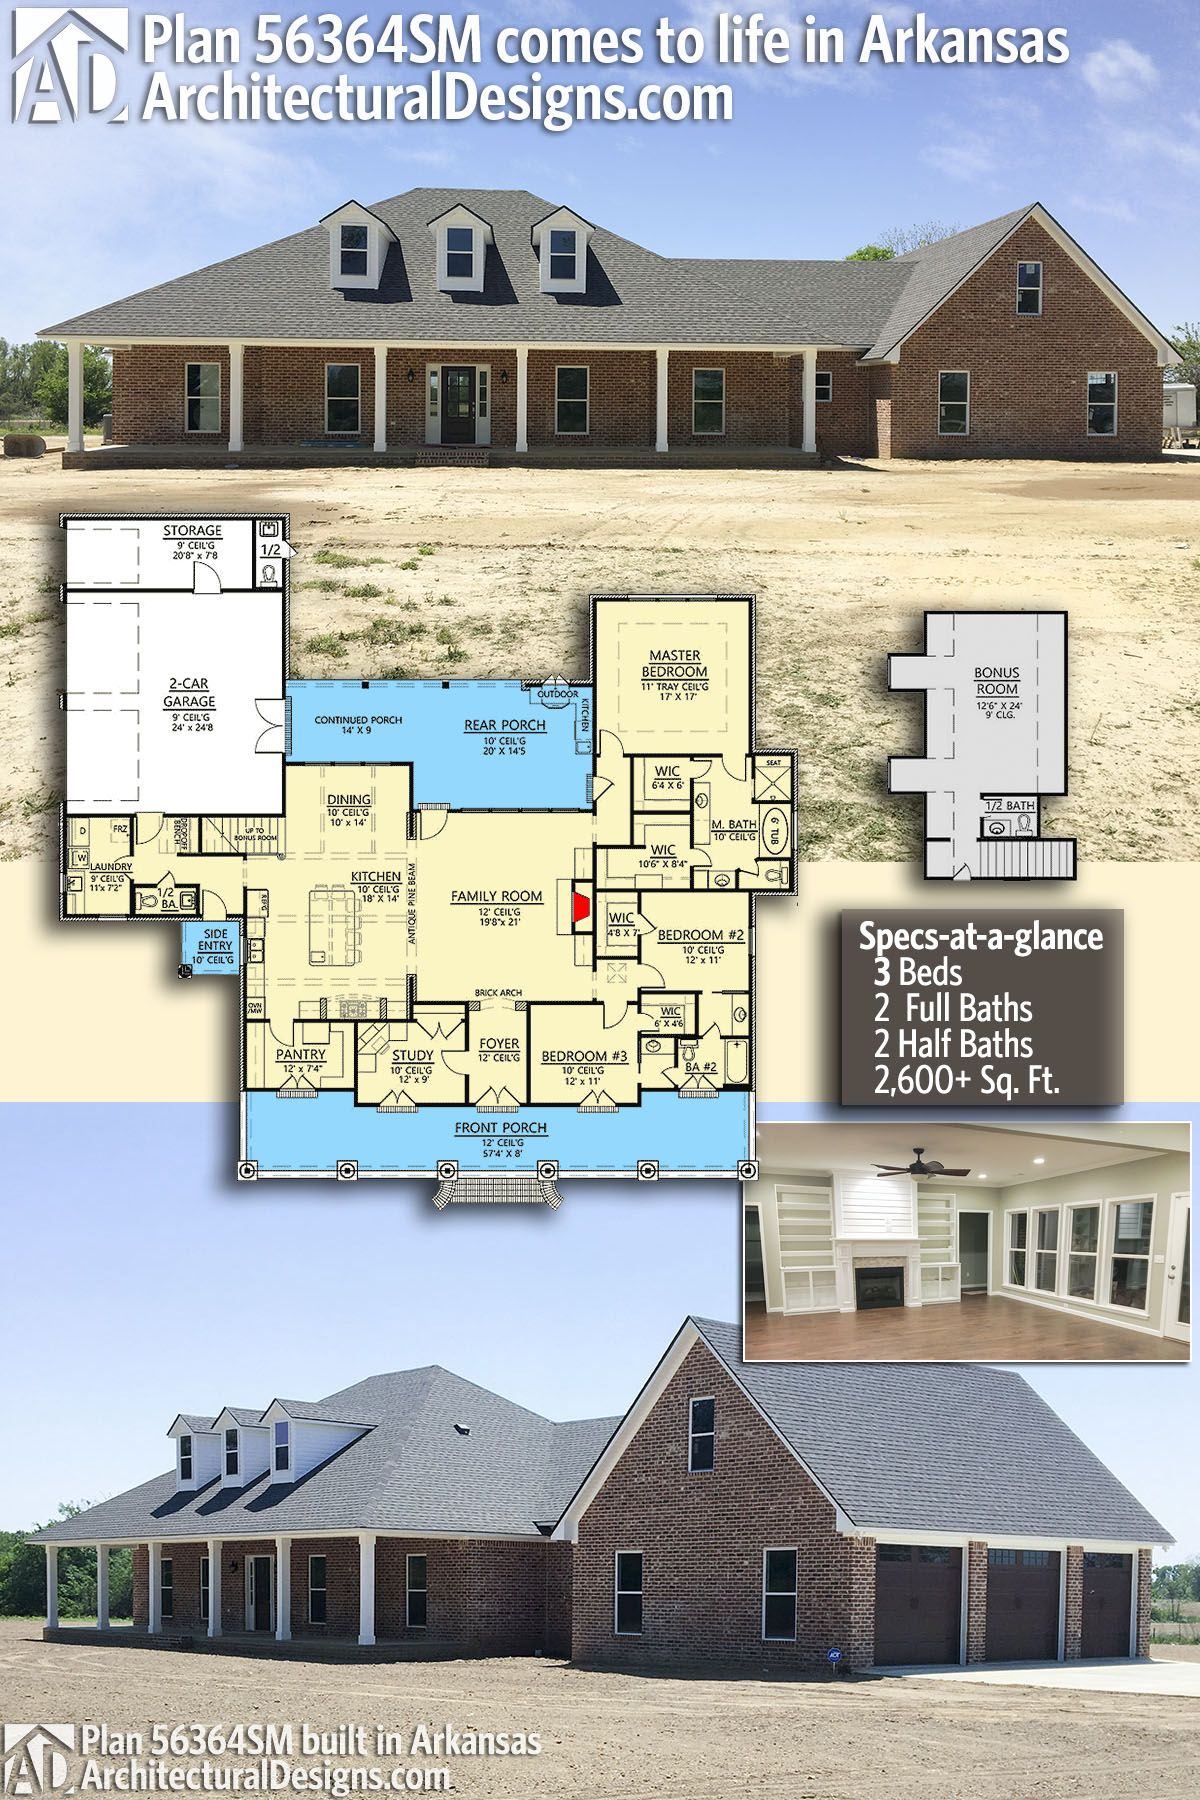 Architectural Designs House Plan 56364SM client built in